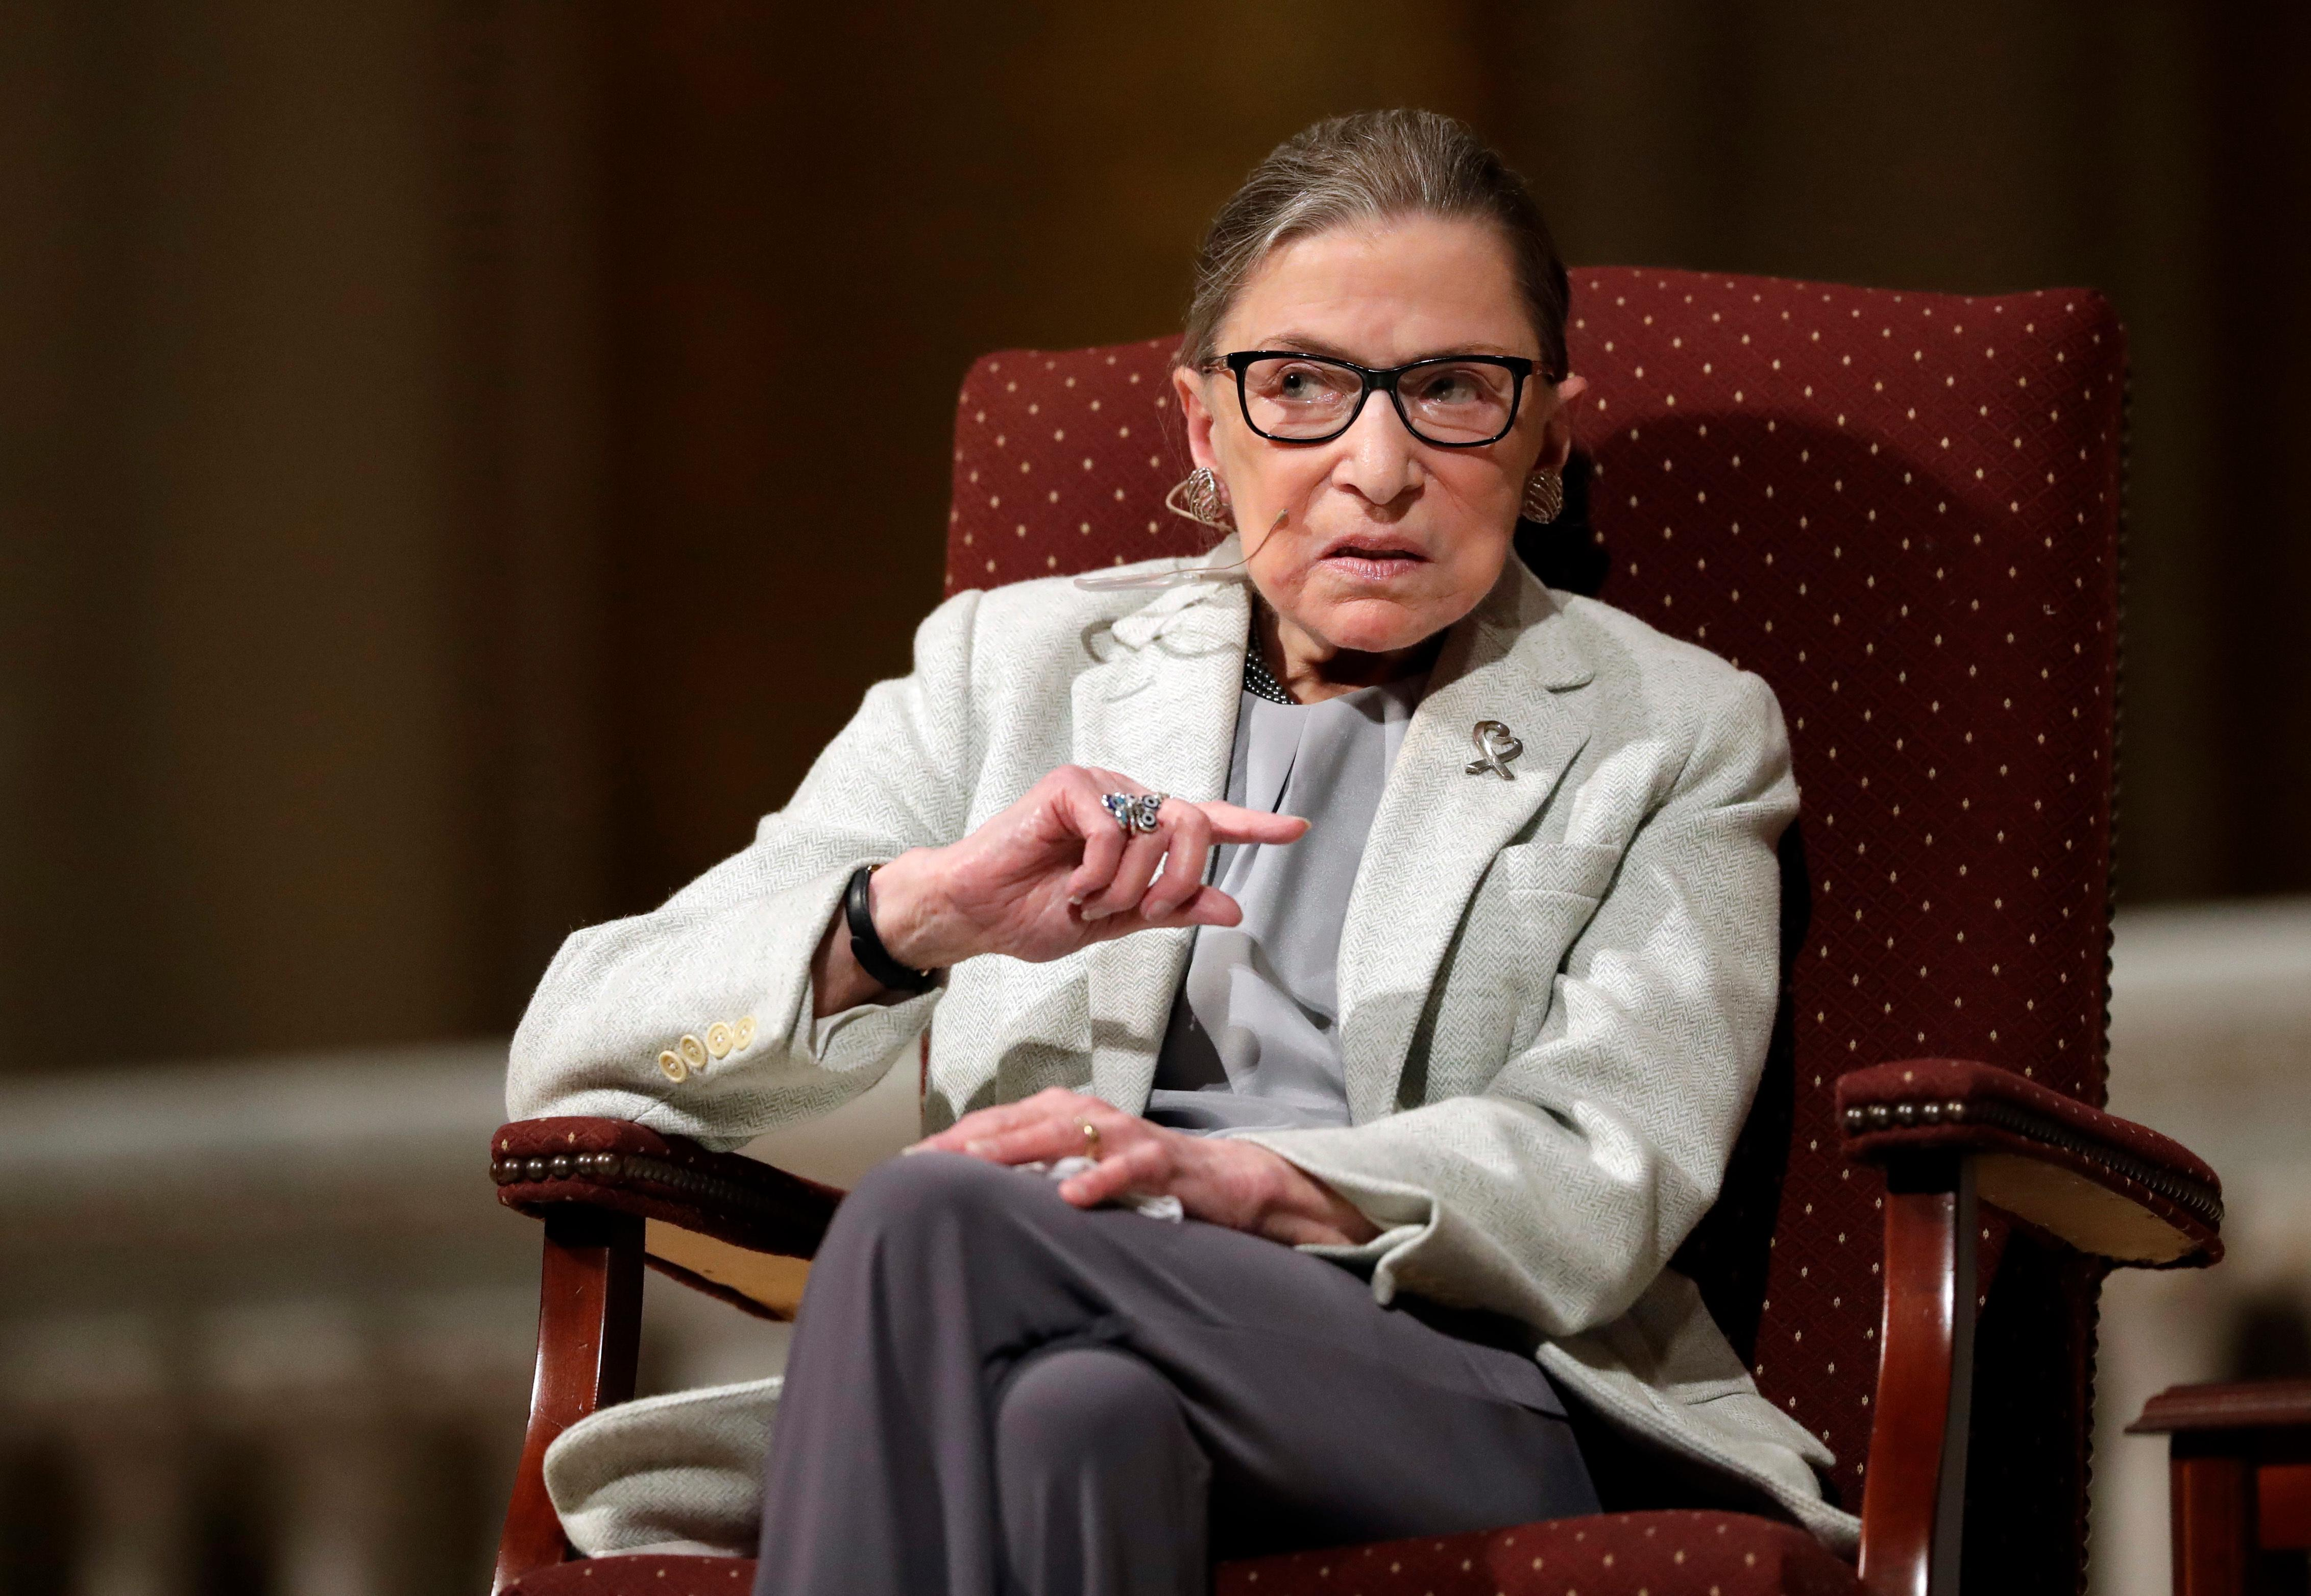 FILE - In this Feb. 6, 2017 file photo, Supreme Court Justice Ruth Bader Ginsburg speaks at Stanford University in Stanford, Calif. In different circumstances, Ginsburg might be on a valedictory tour in her final months on the Supreme Court. But in the era of Donald Trump, the 84-year-old Ginsburg is packing her schedule and sending signals she intends to keep her seat on the bench for years. (AP Photo/Marcio Jose Sanchez, File)